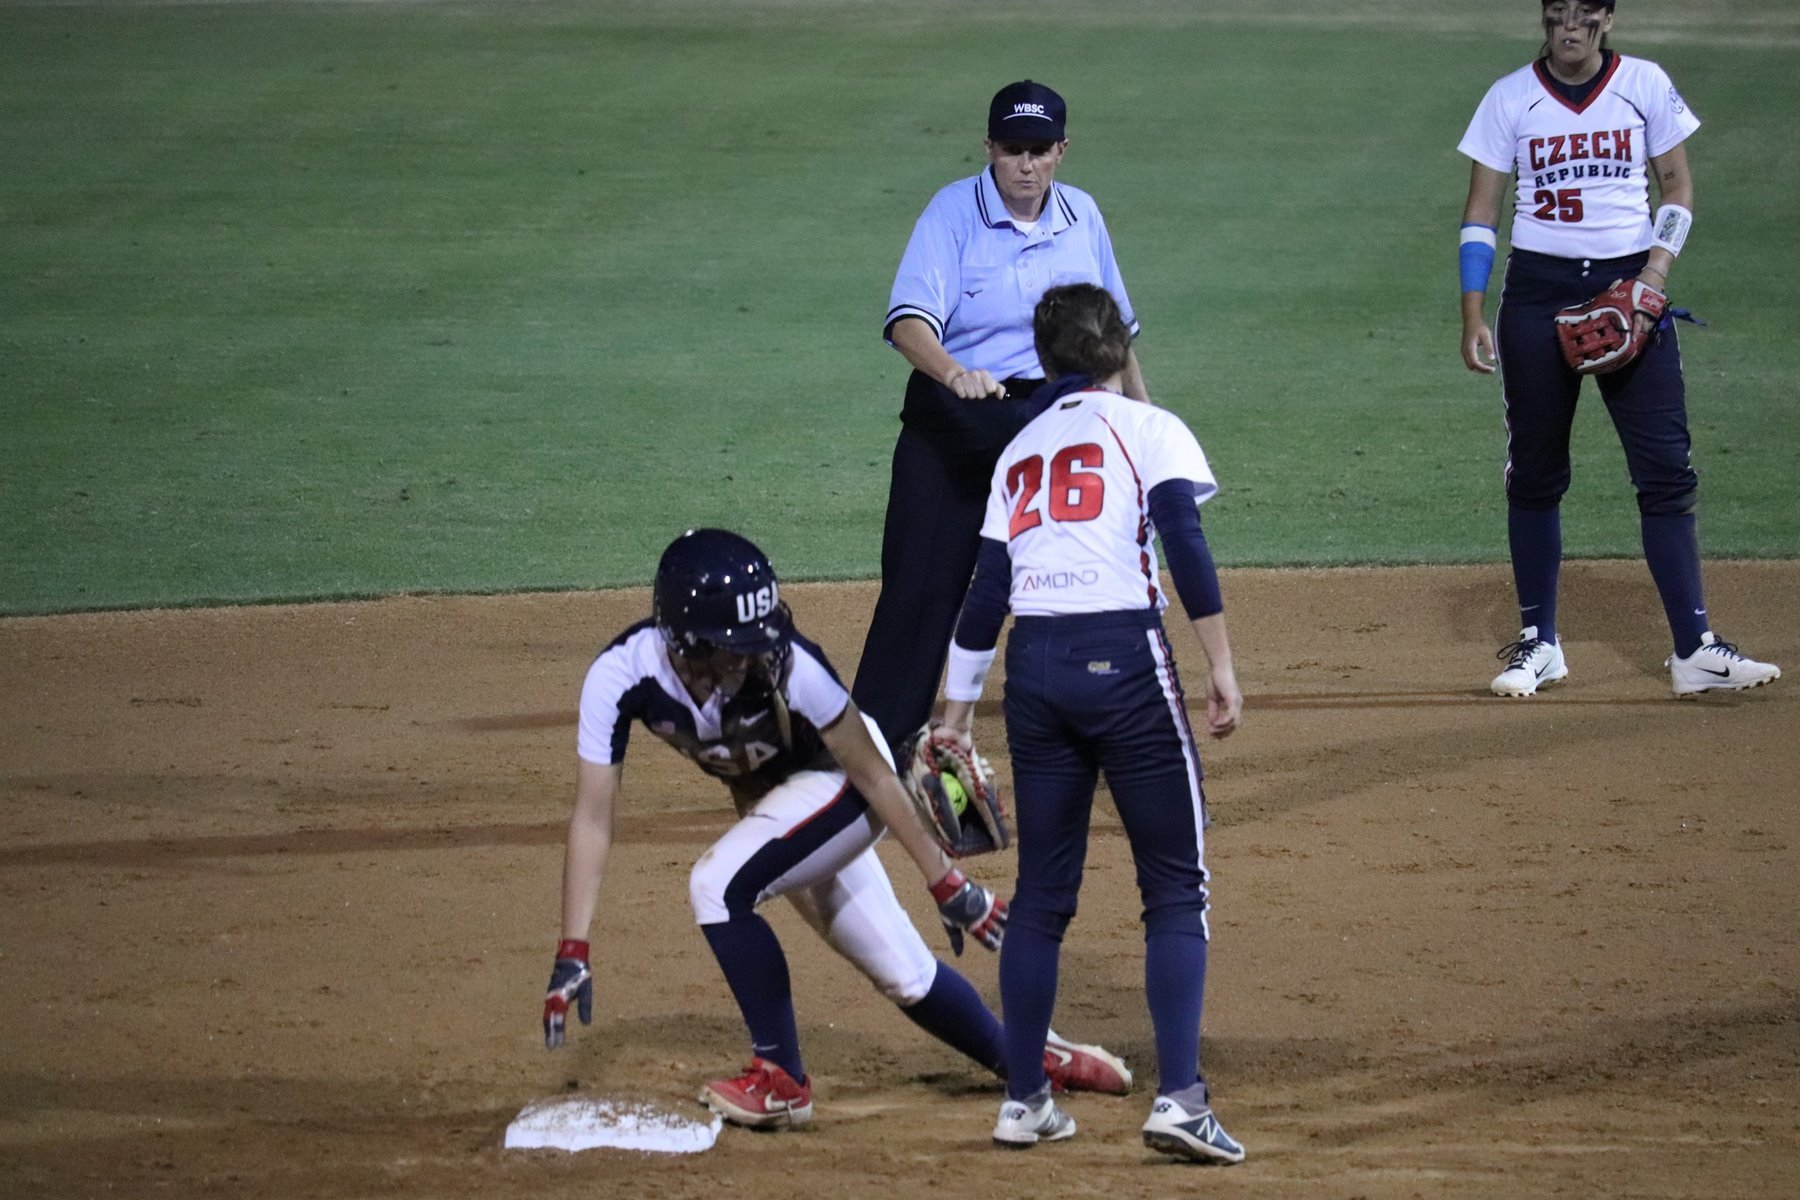 The USA went on to win 8-0 in five innings